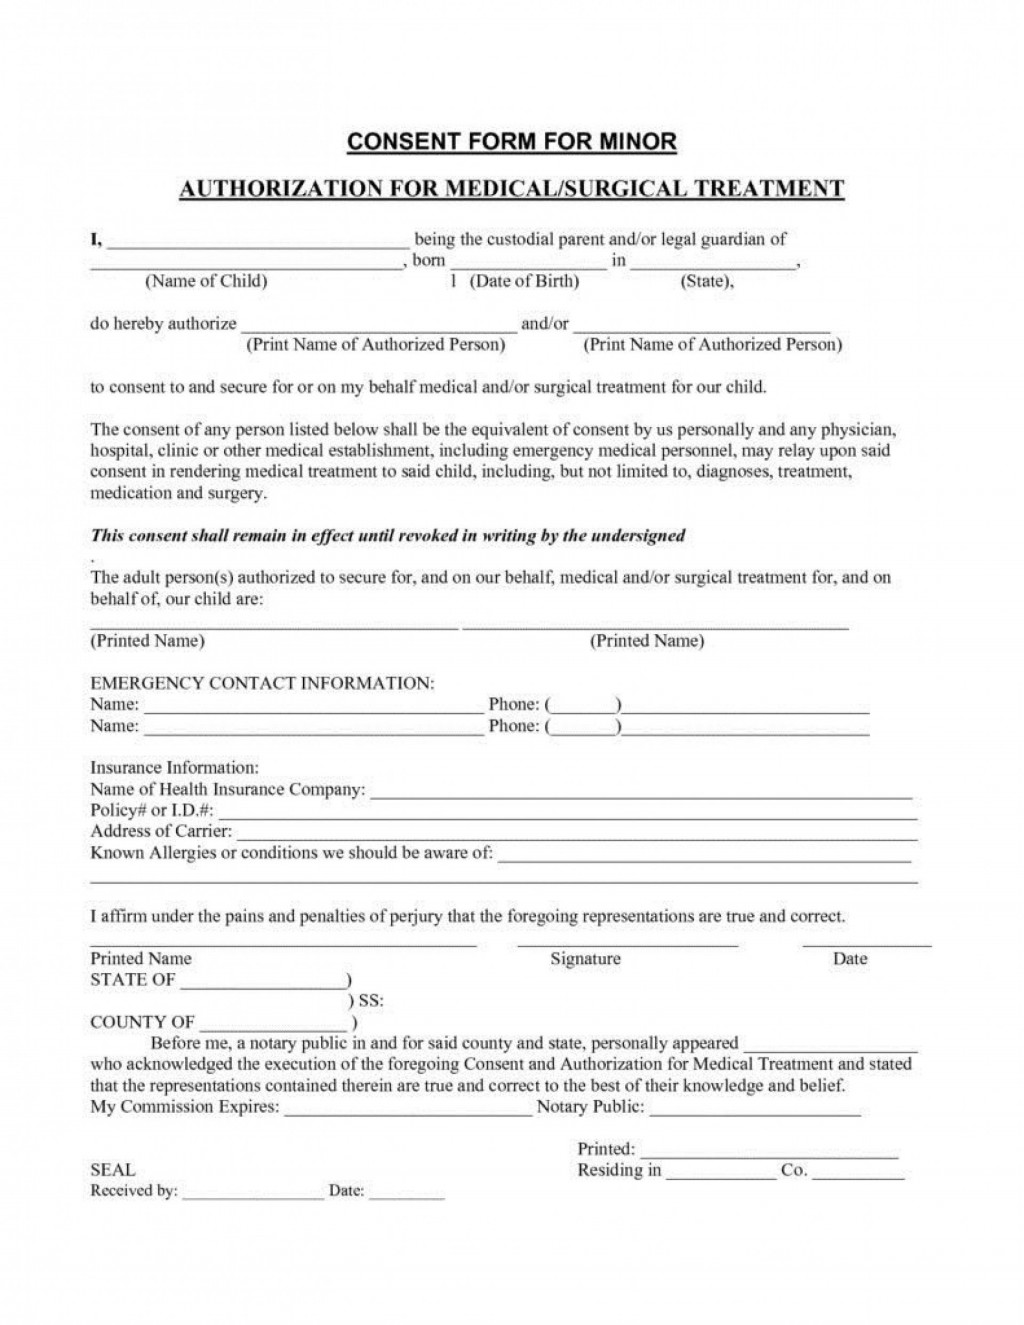 006 Amazing Medical Treatment Authorization And Consent Form Template Design Large